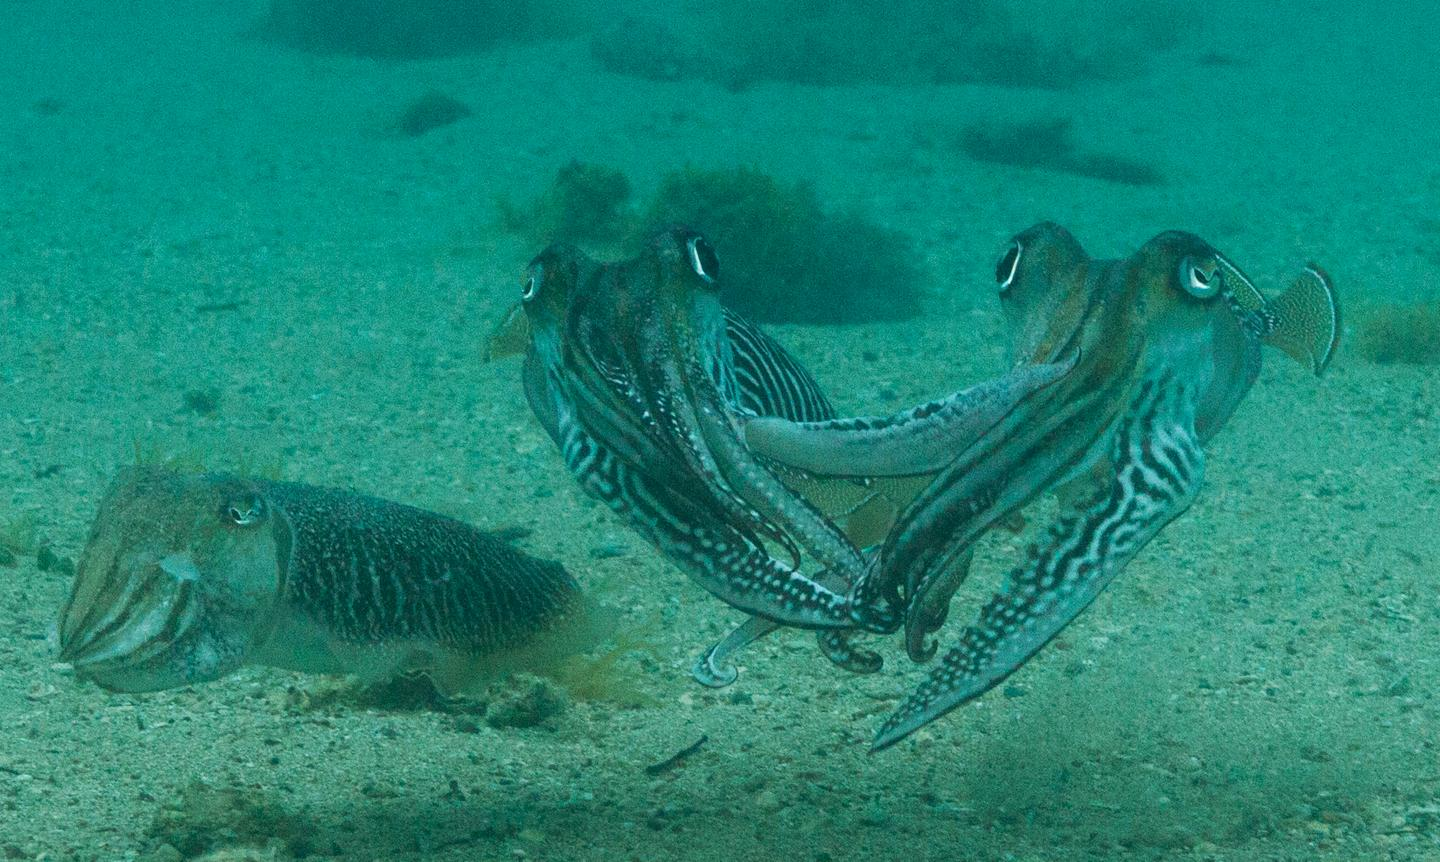 Hands off: for the first time, researchers have captured footage of how vicious male cuttlefish can be when it comes to protecting their mate (left) from intruders